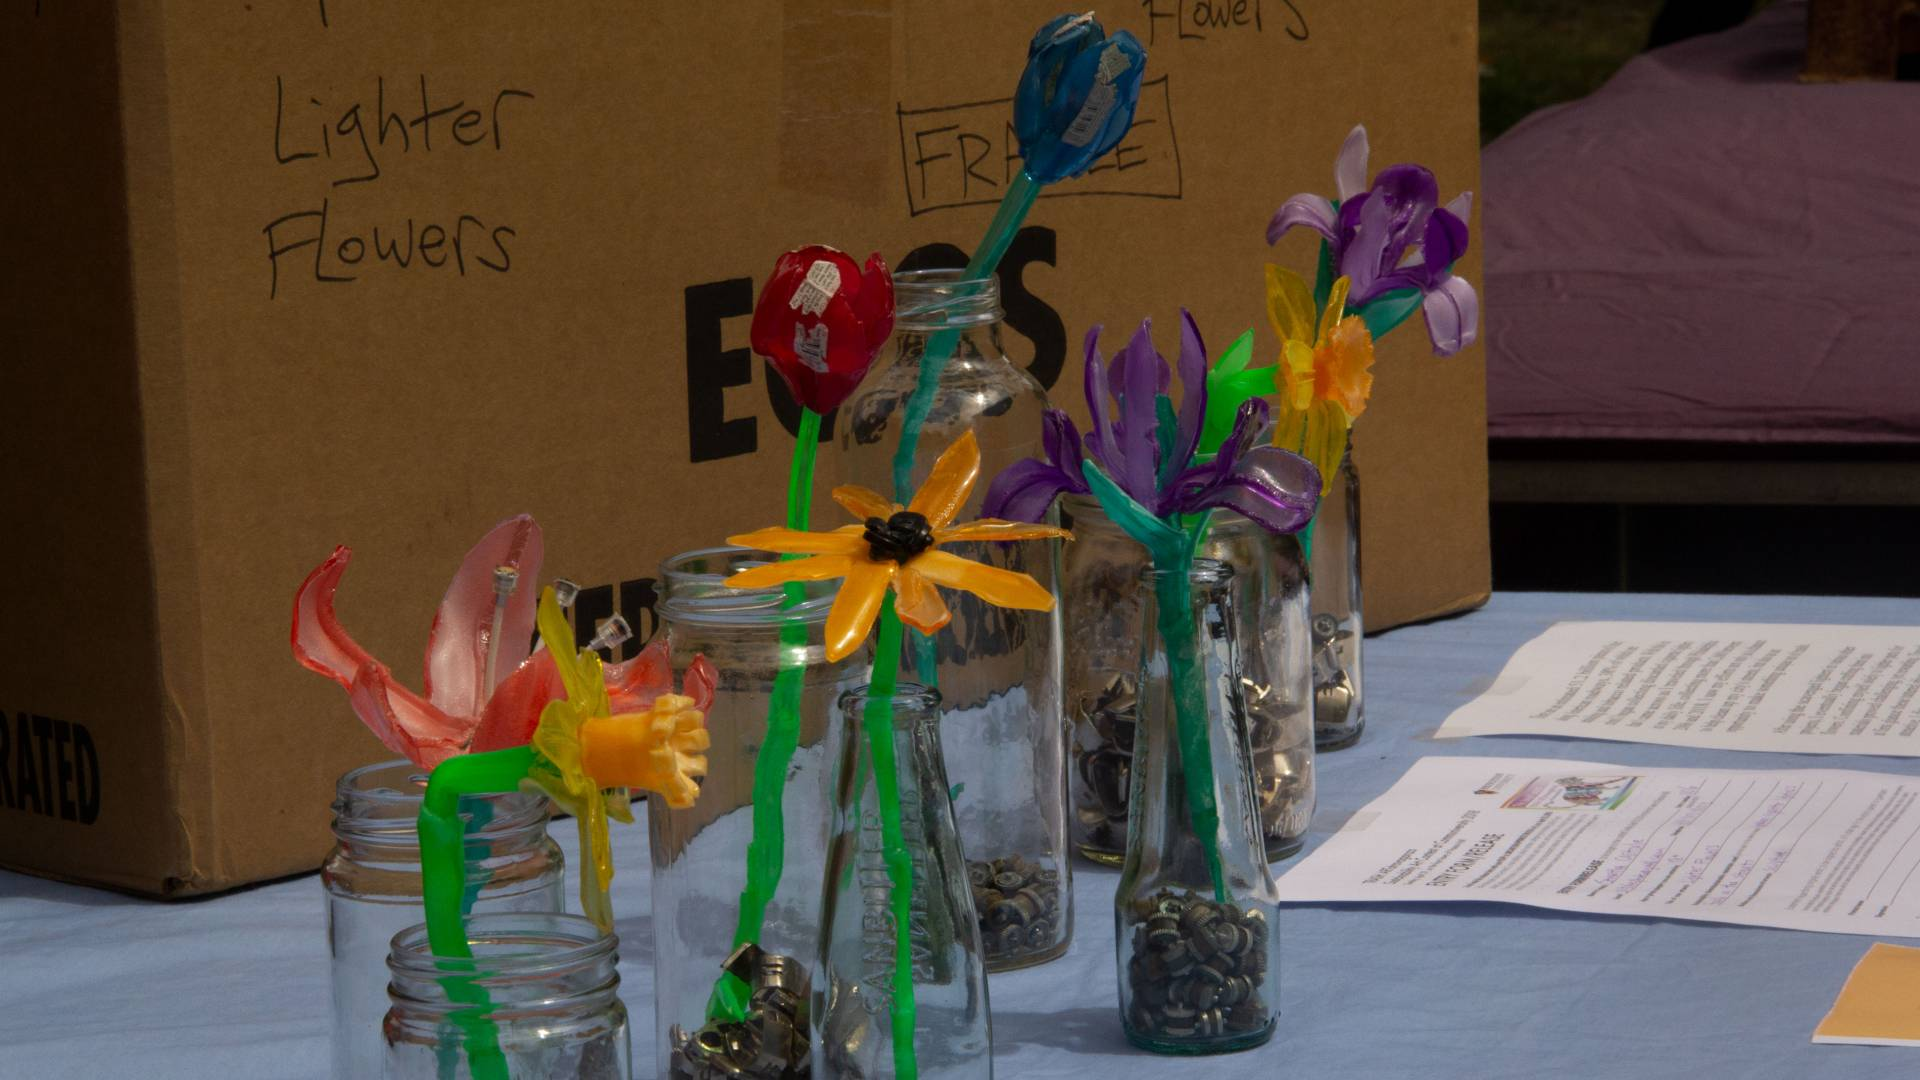 Flowers made from cigarette lighters for trash art competition